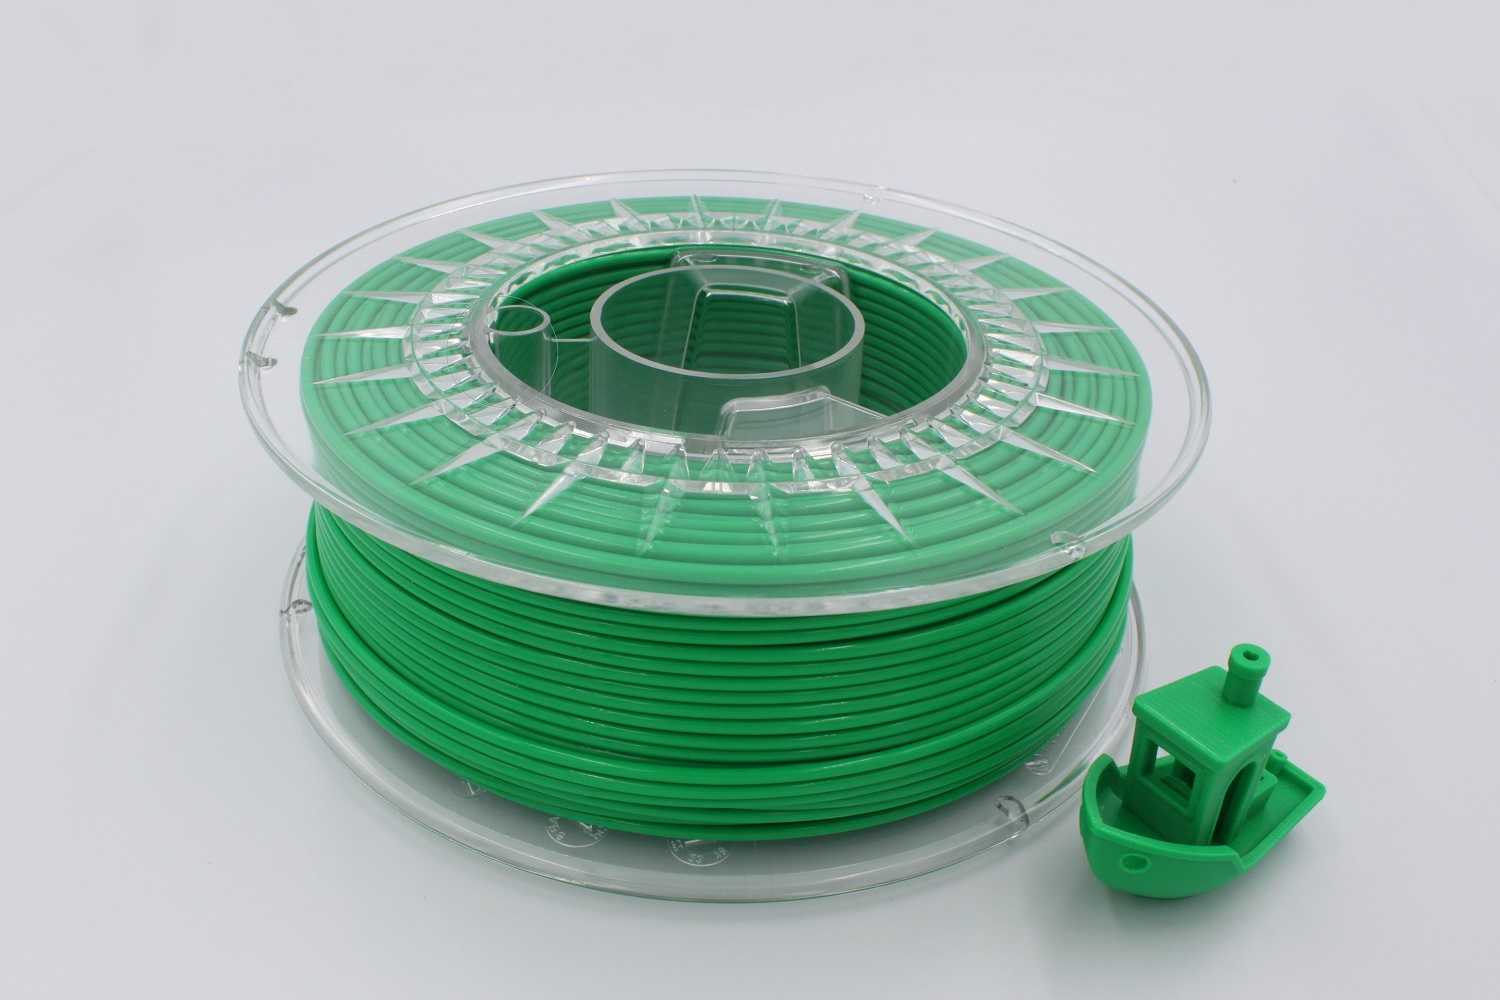 More info on Emerald Eyes Filament